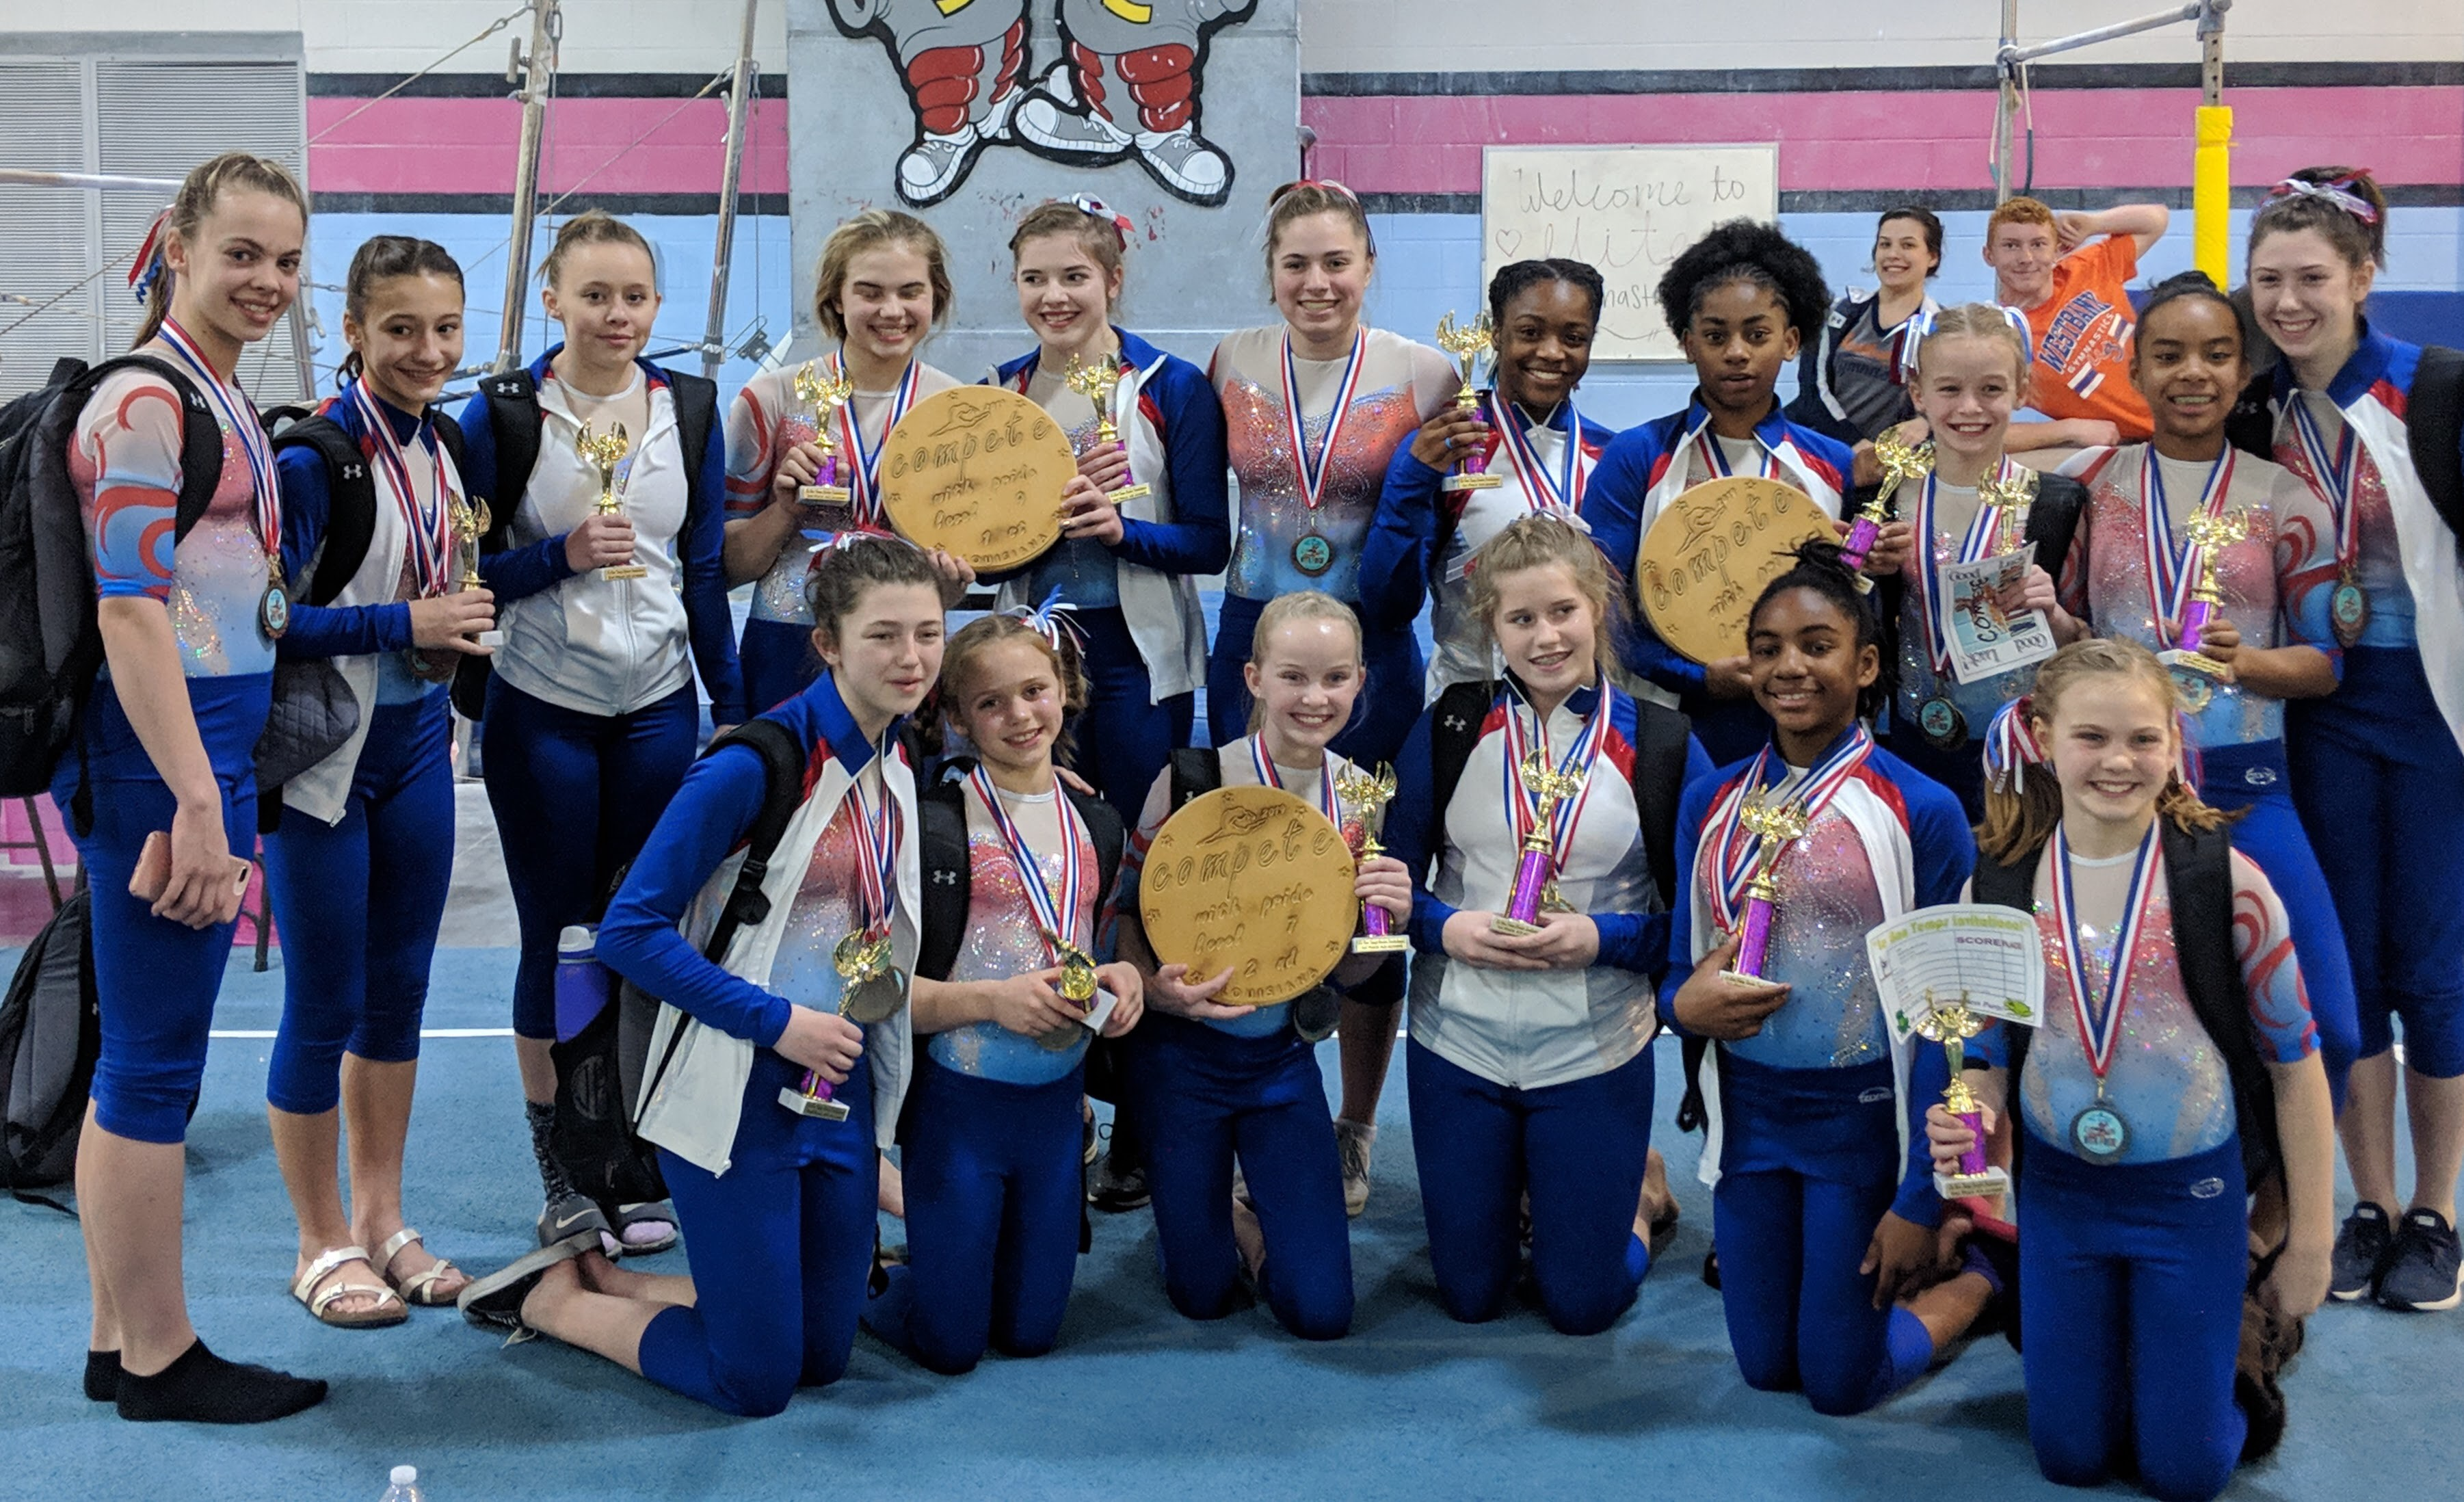 Our gymnastics team in Mobile, AL.